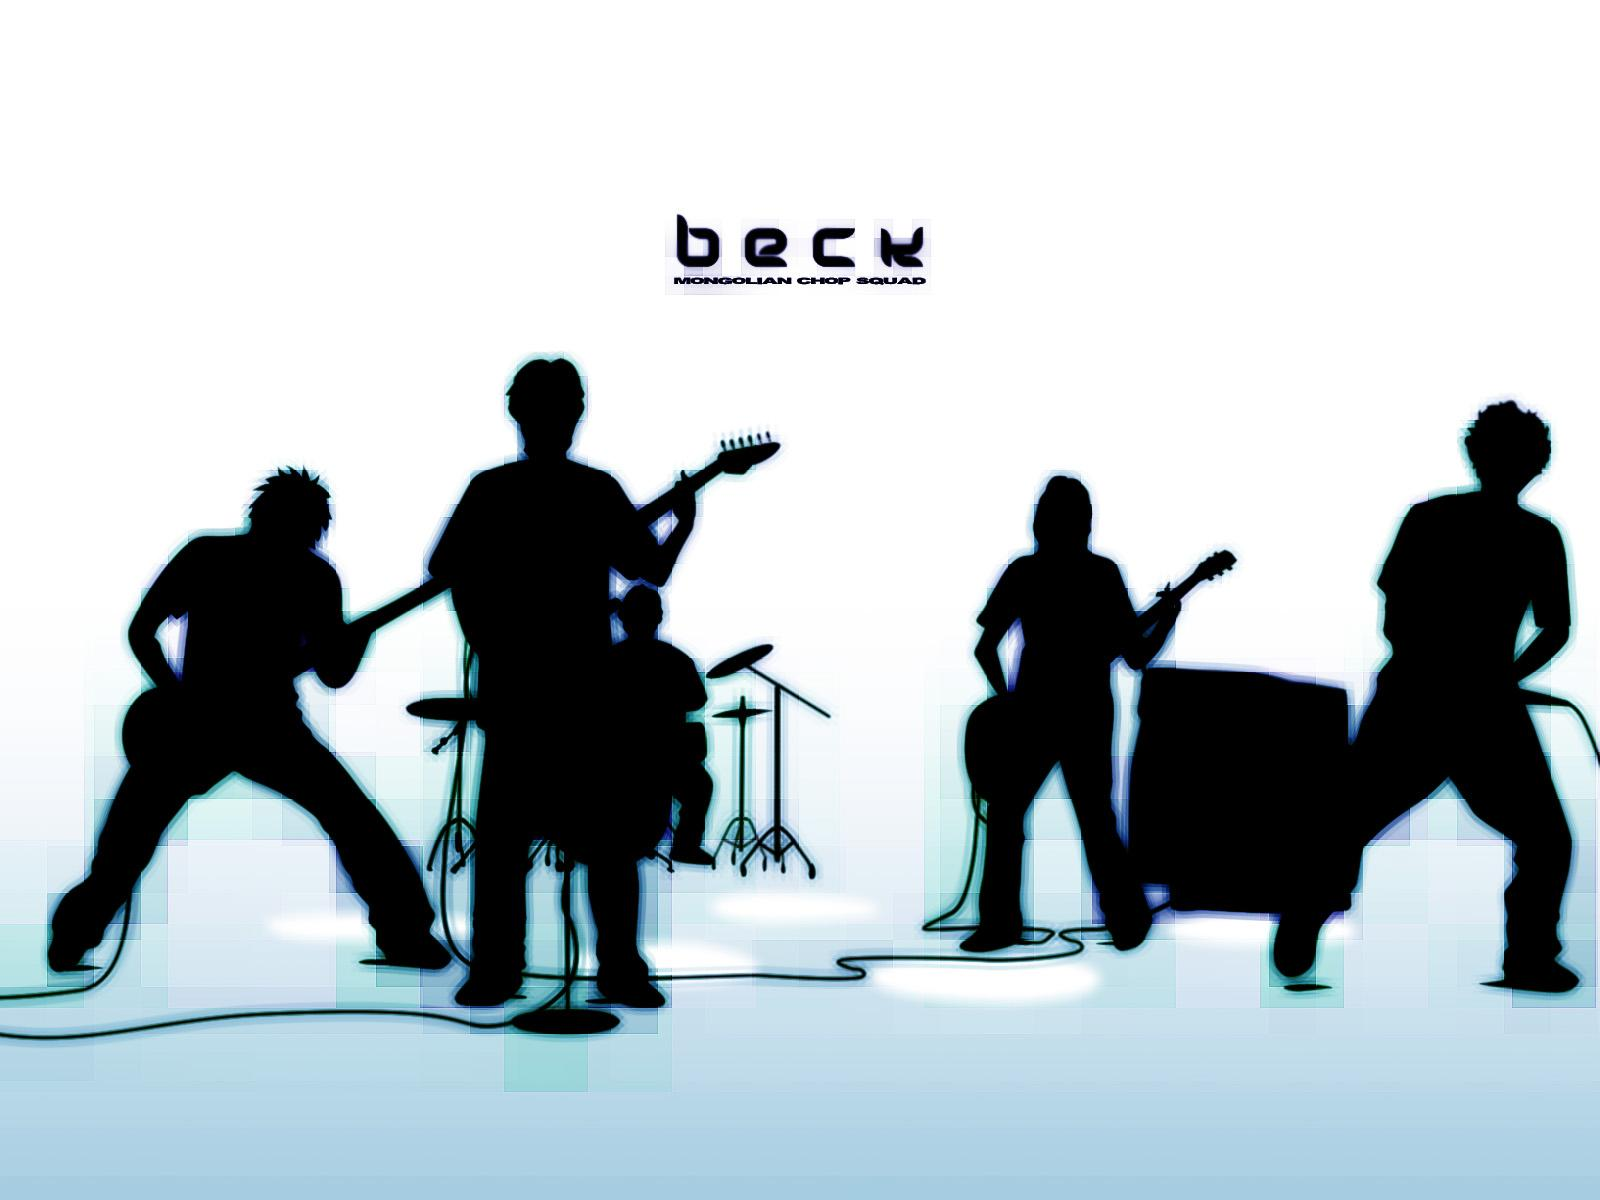 Beck Wallpaper and Background Image 1600x1200 ID73800 1600x1200